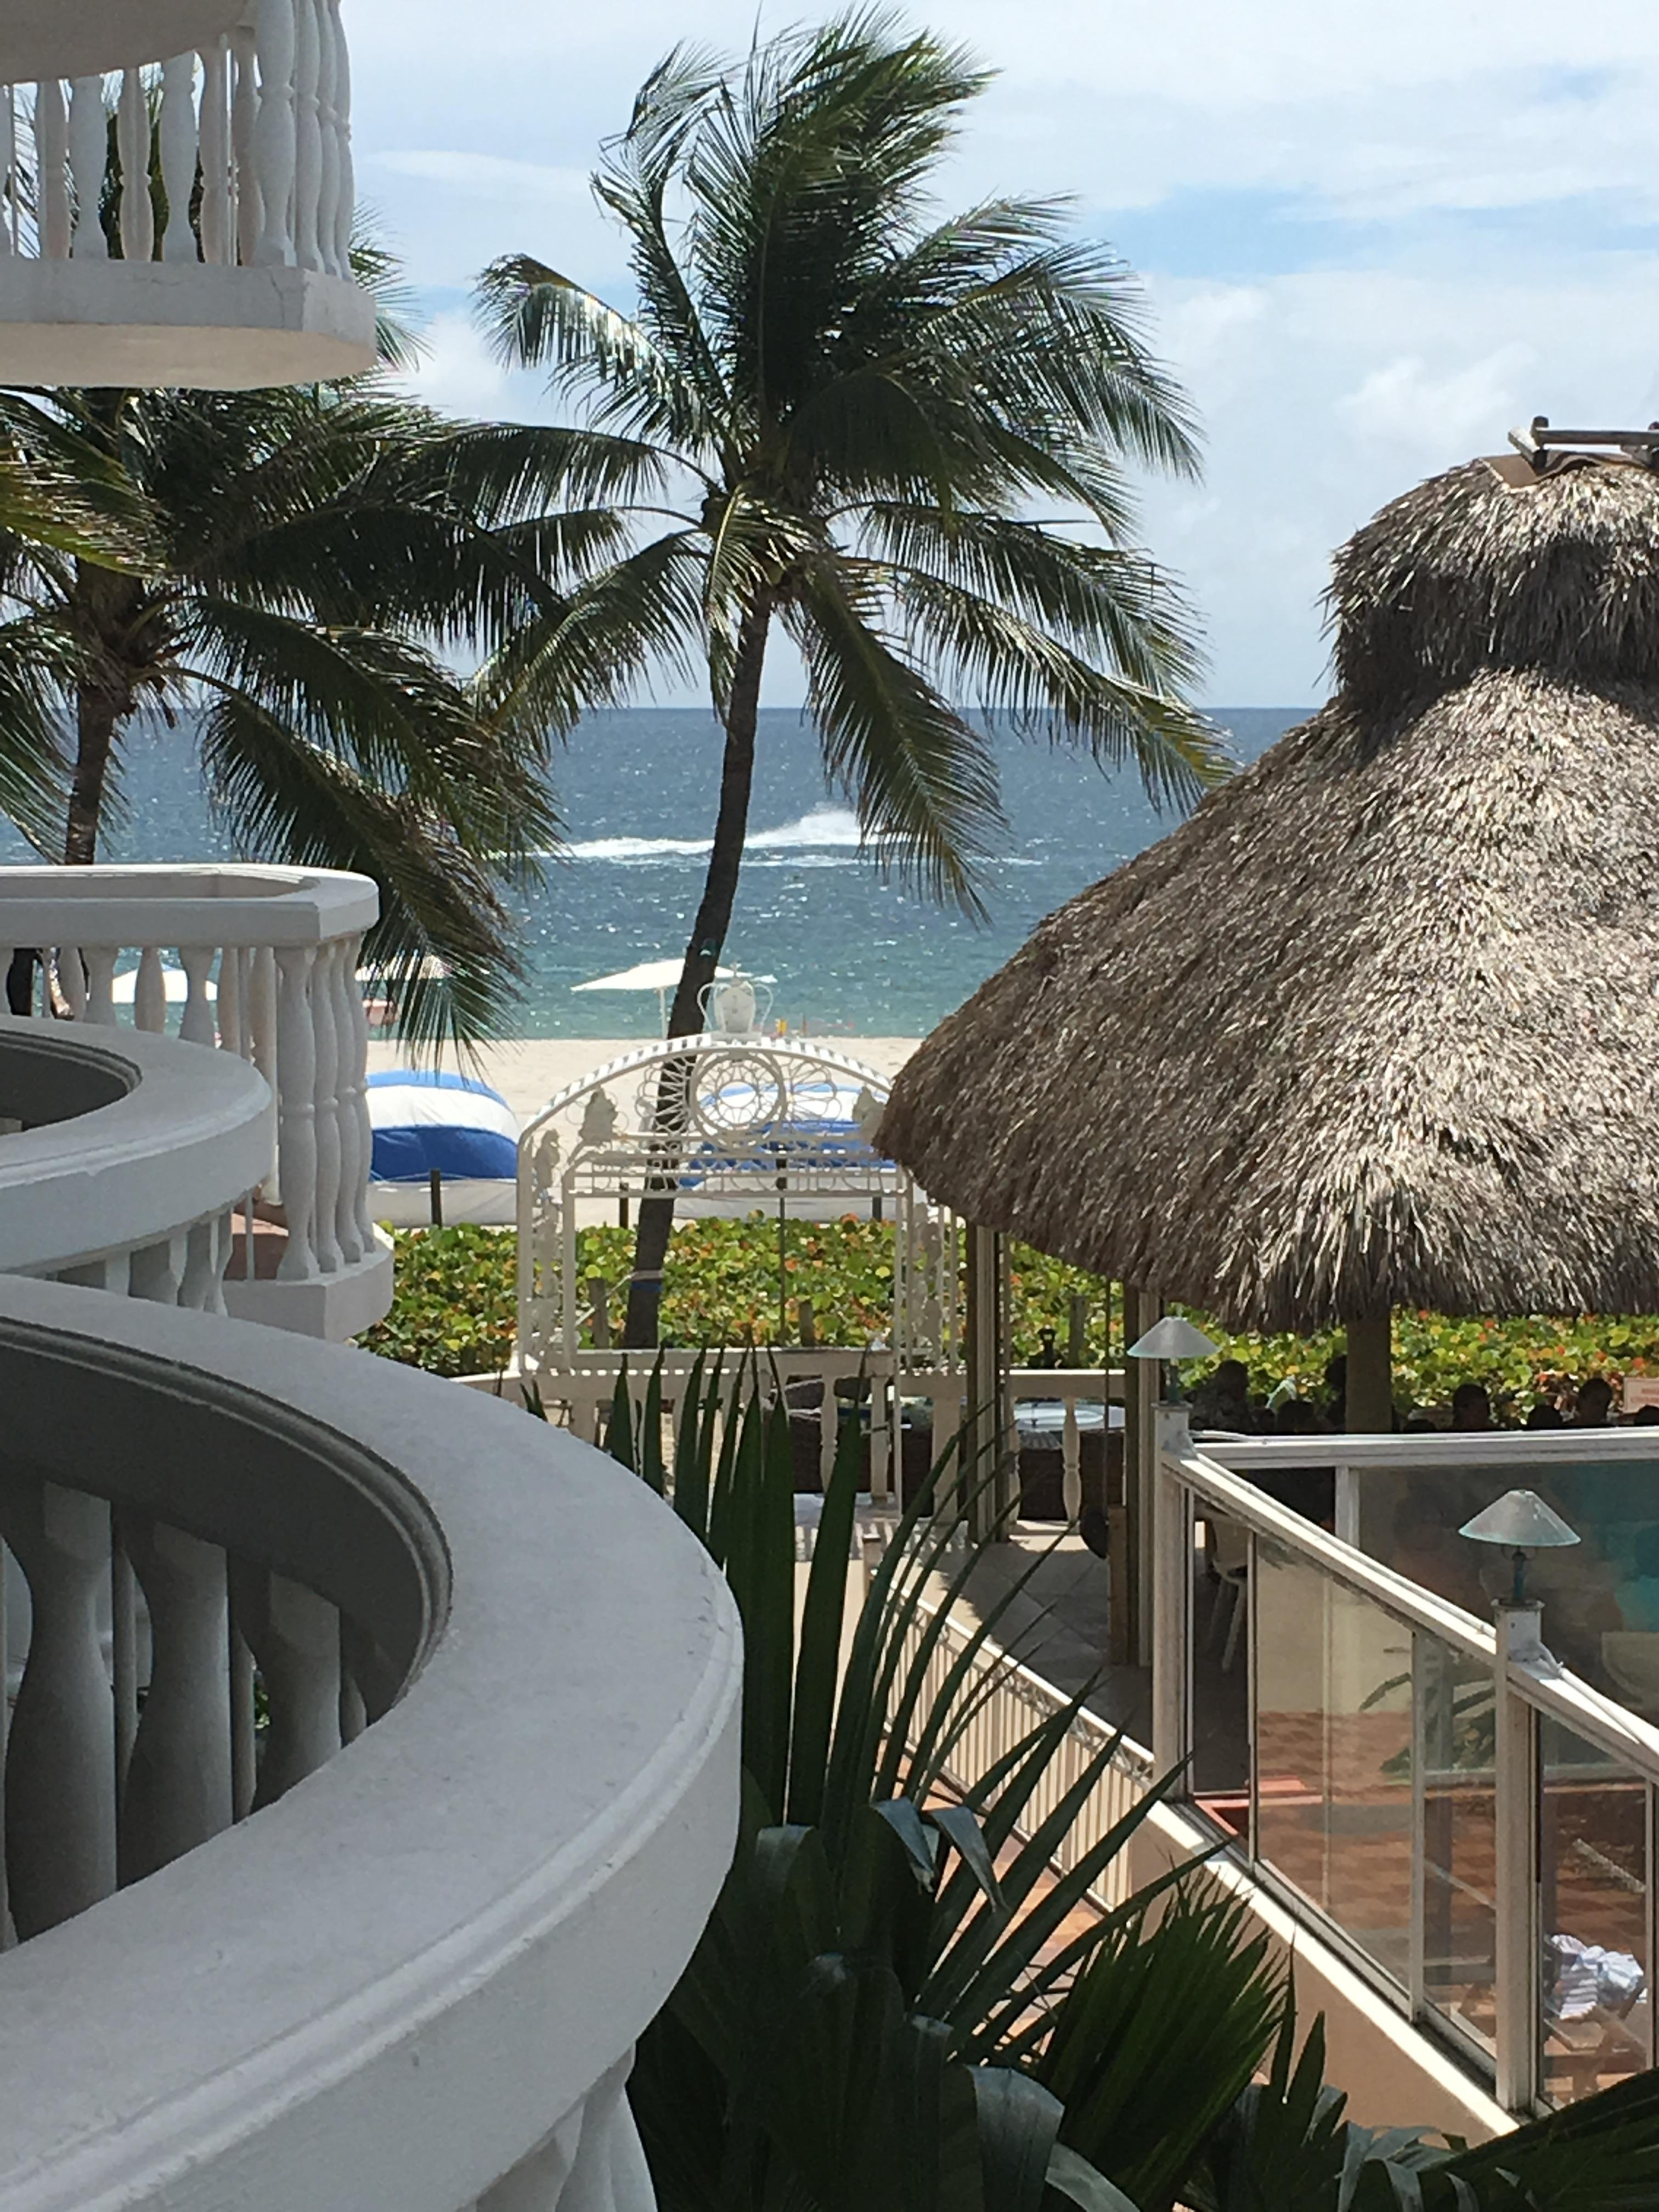 View from our Ocean view room.